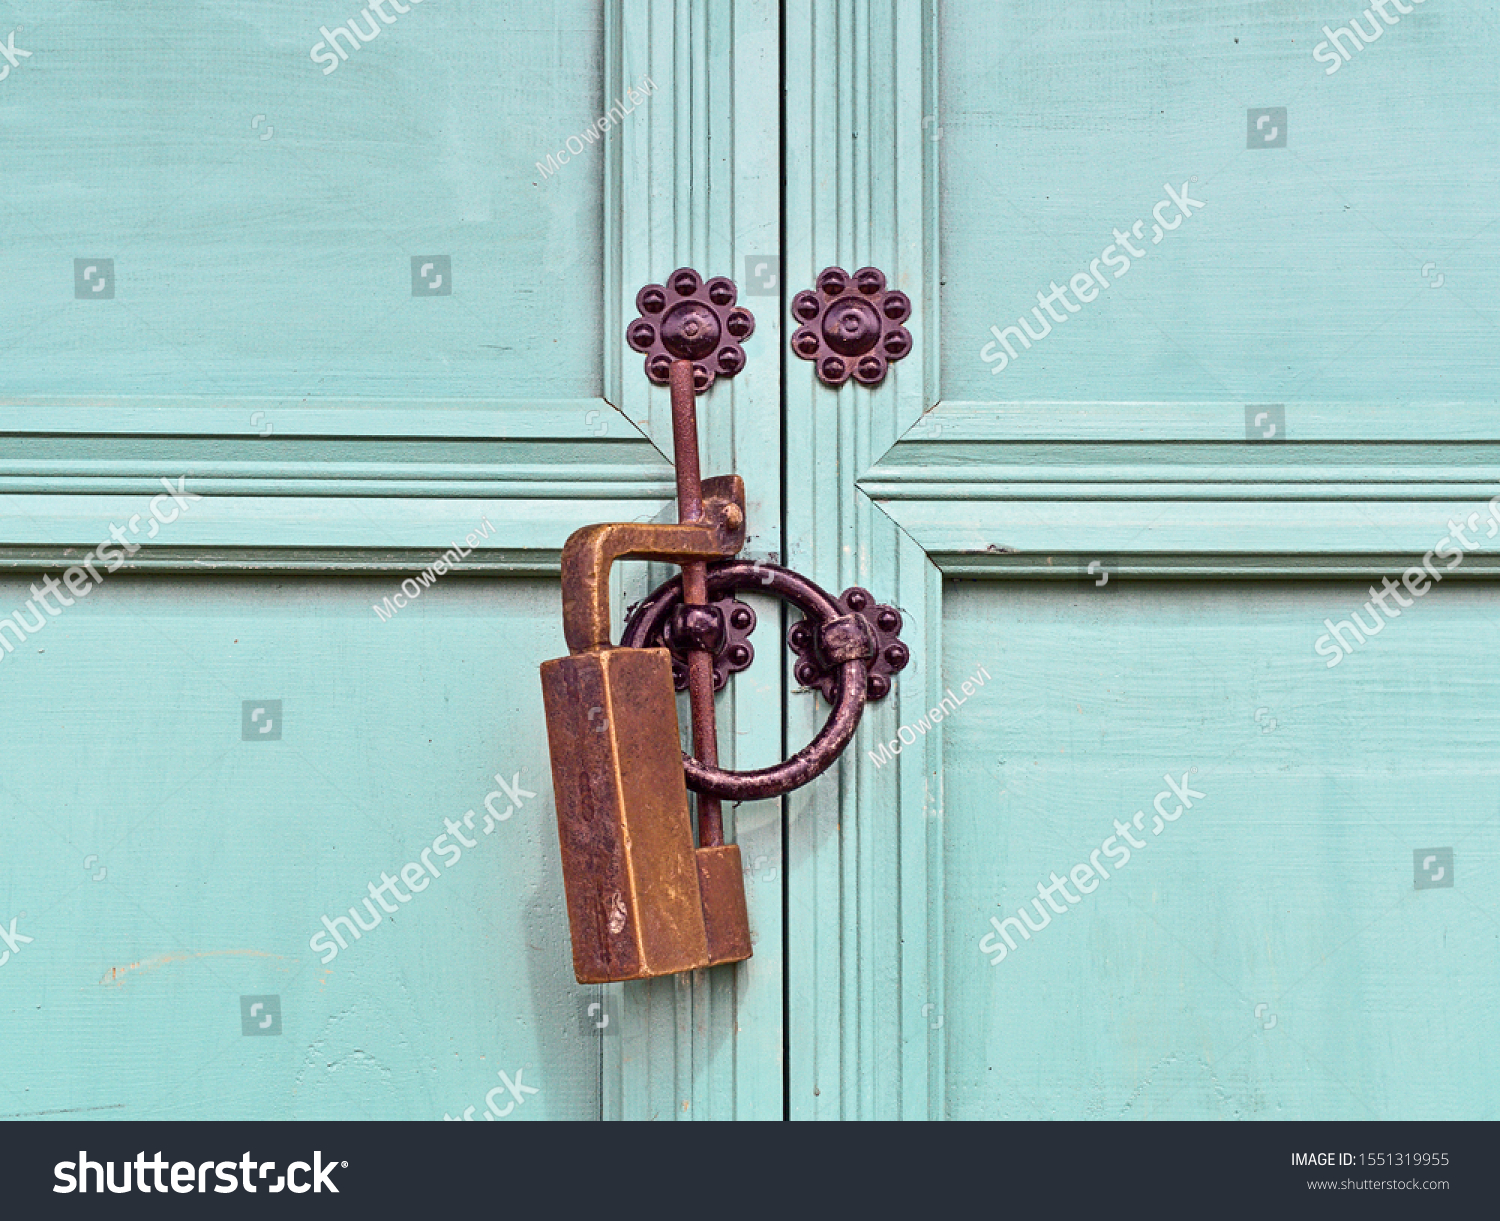 stock-photo-isolated-old-padlock-of-a-wo